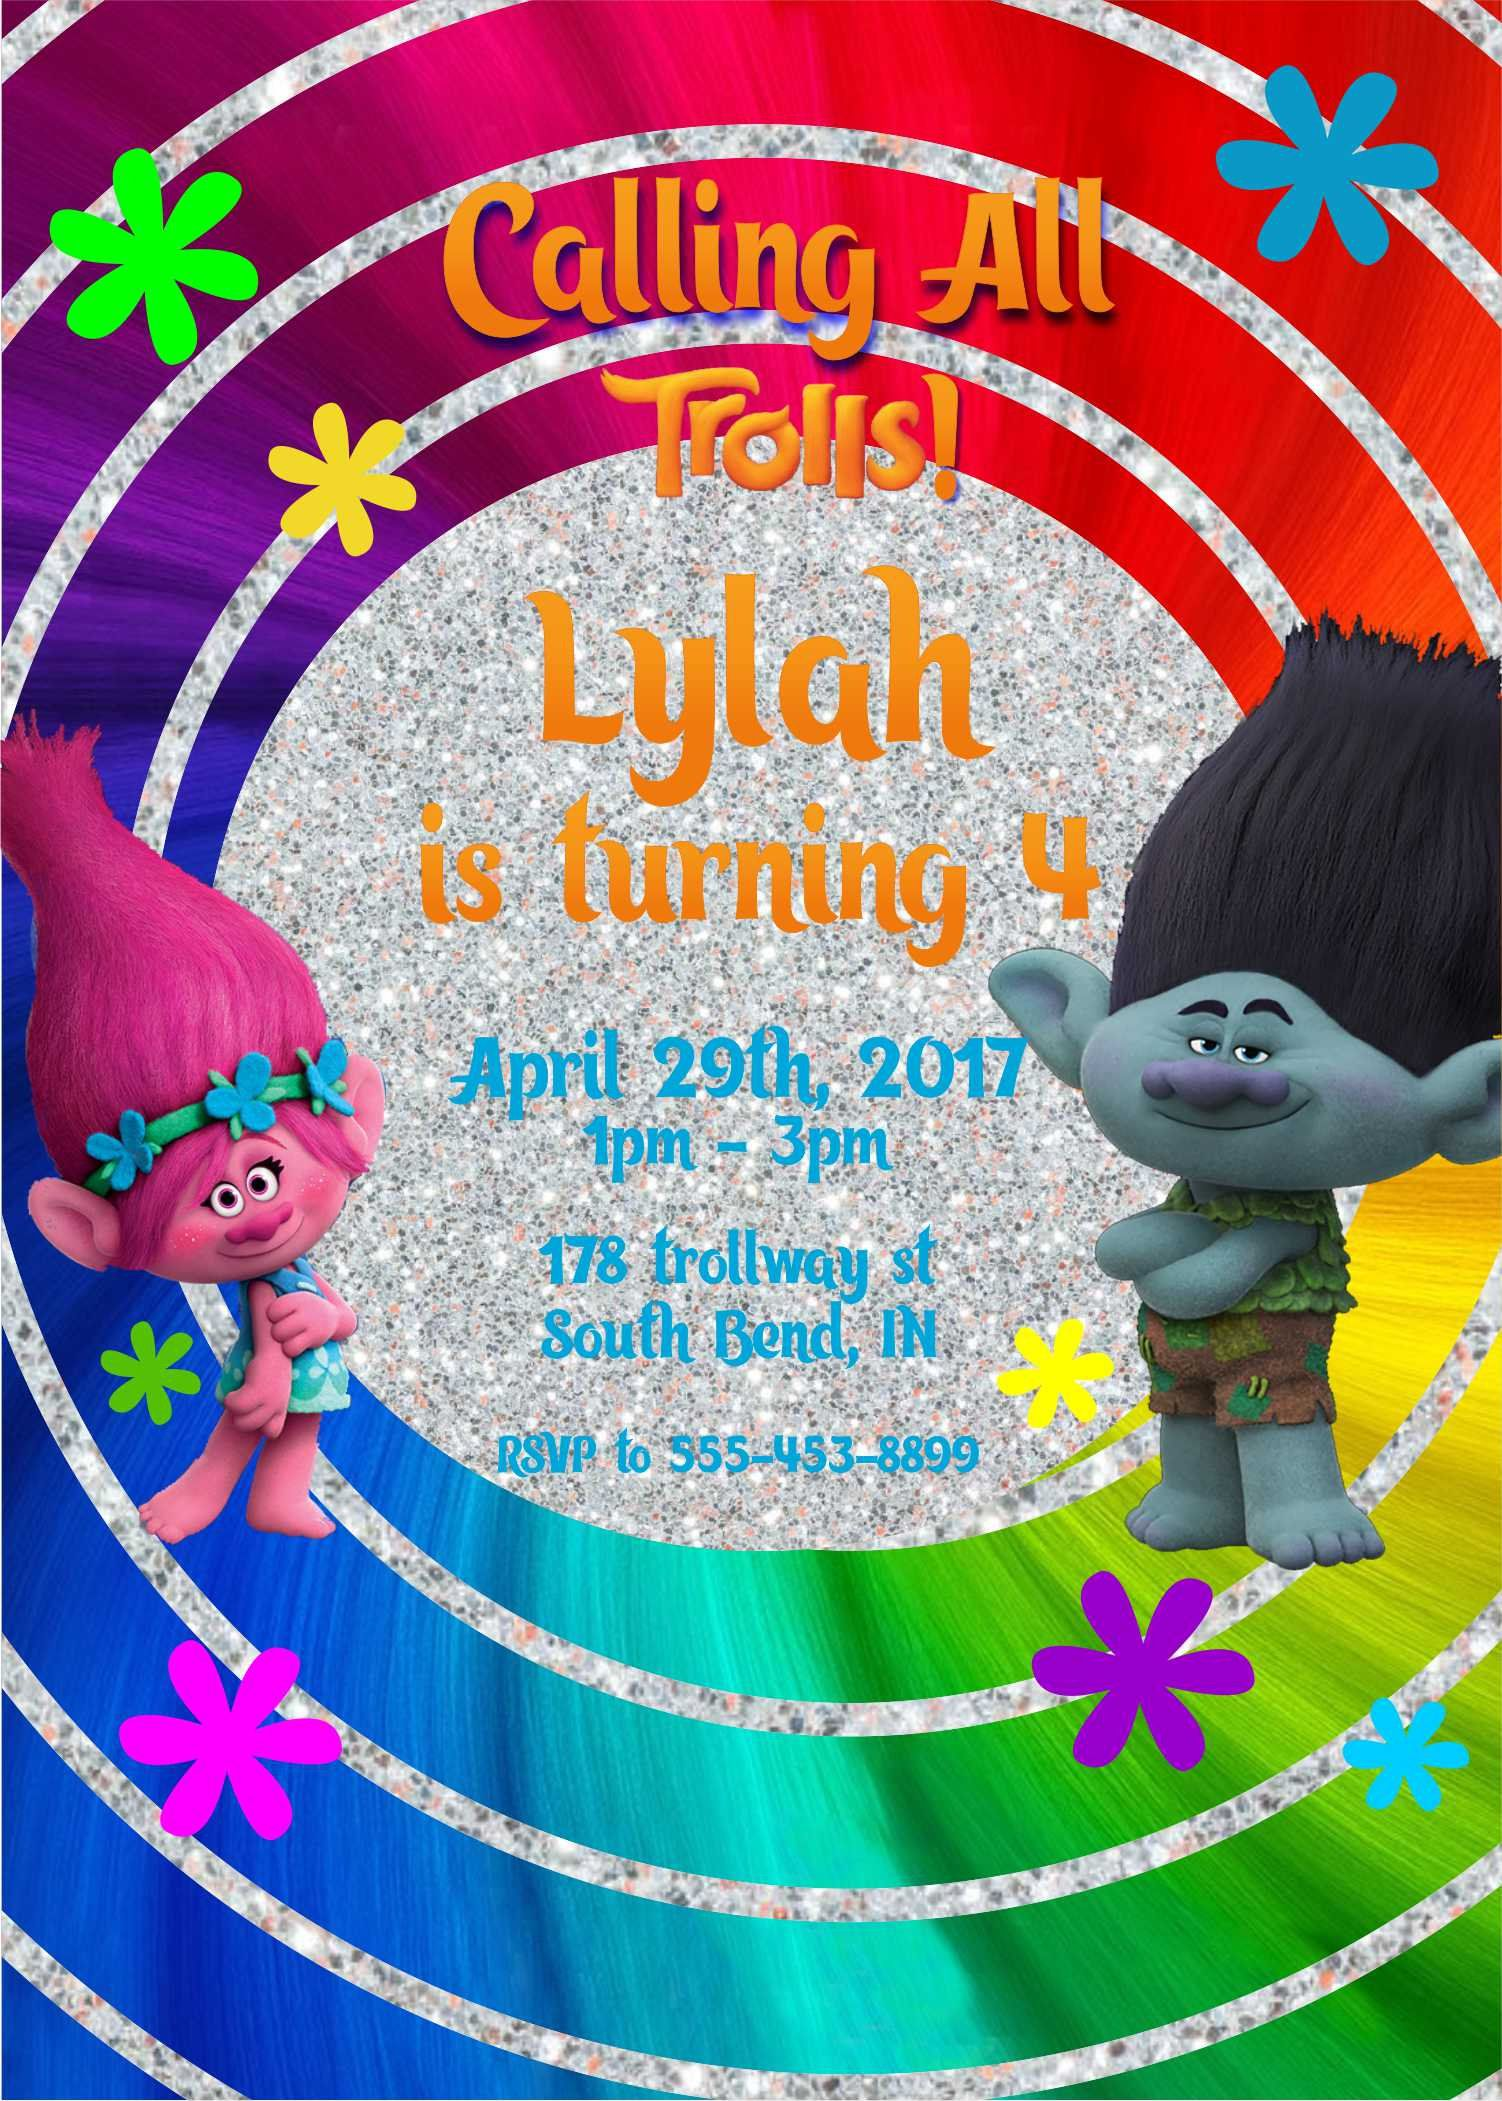 image relating to Trolls Printable Invitations titled Trolls Poppy Birthday Invites, trolls invites